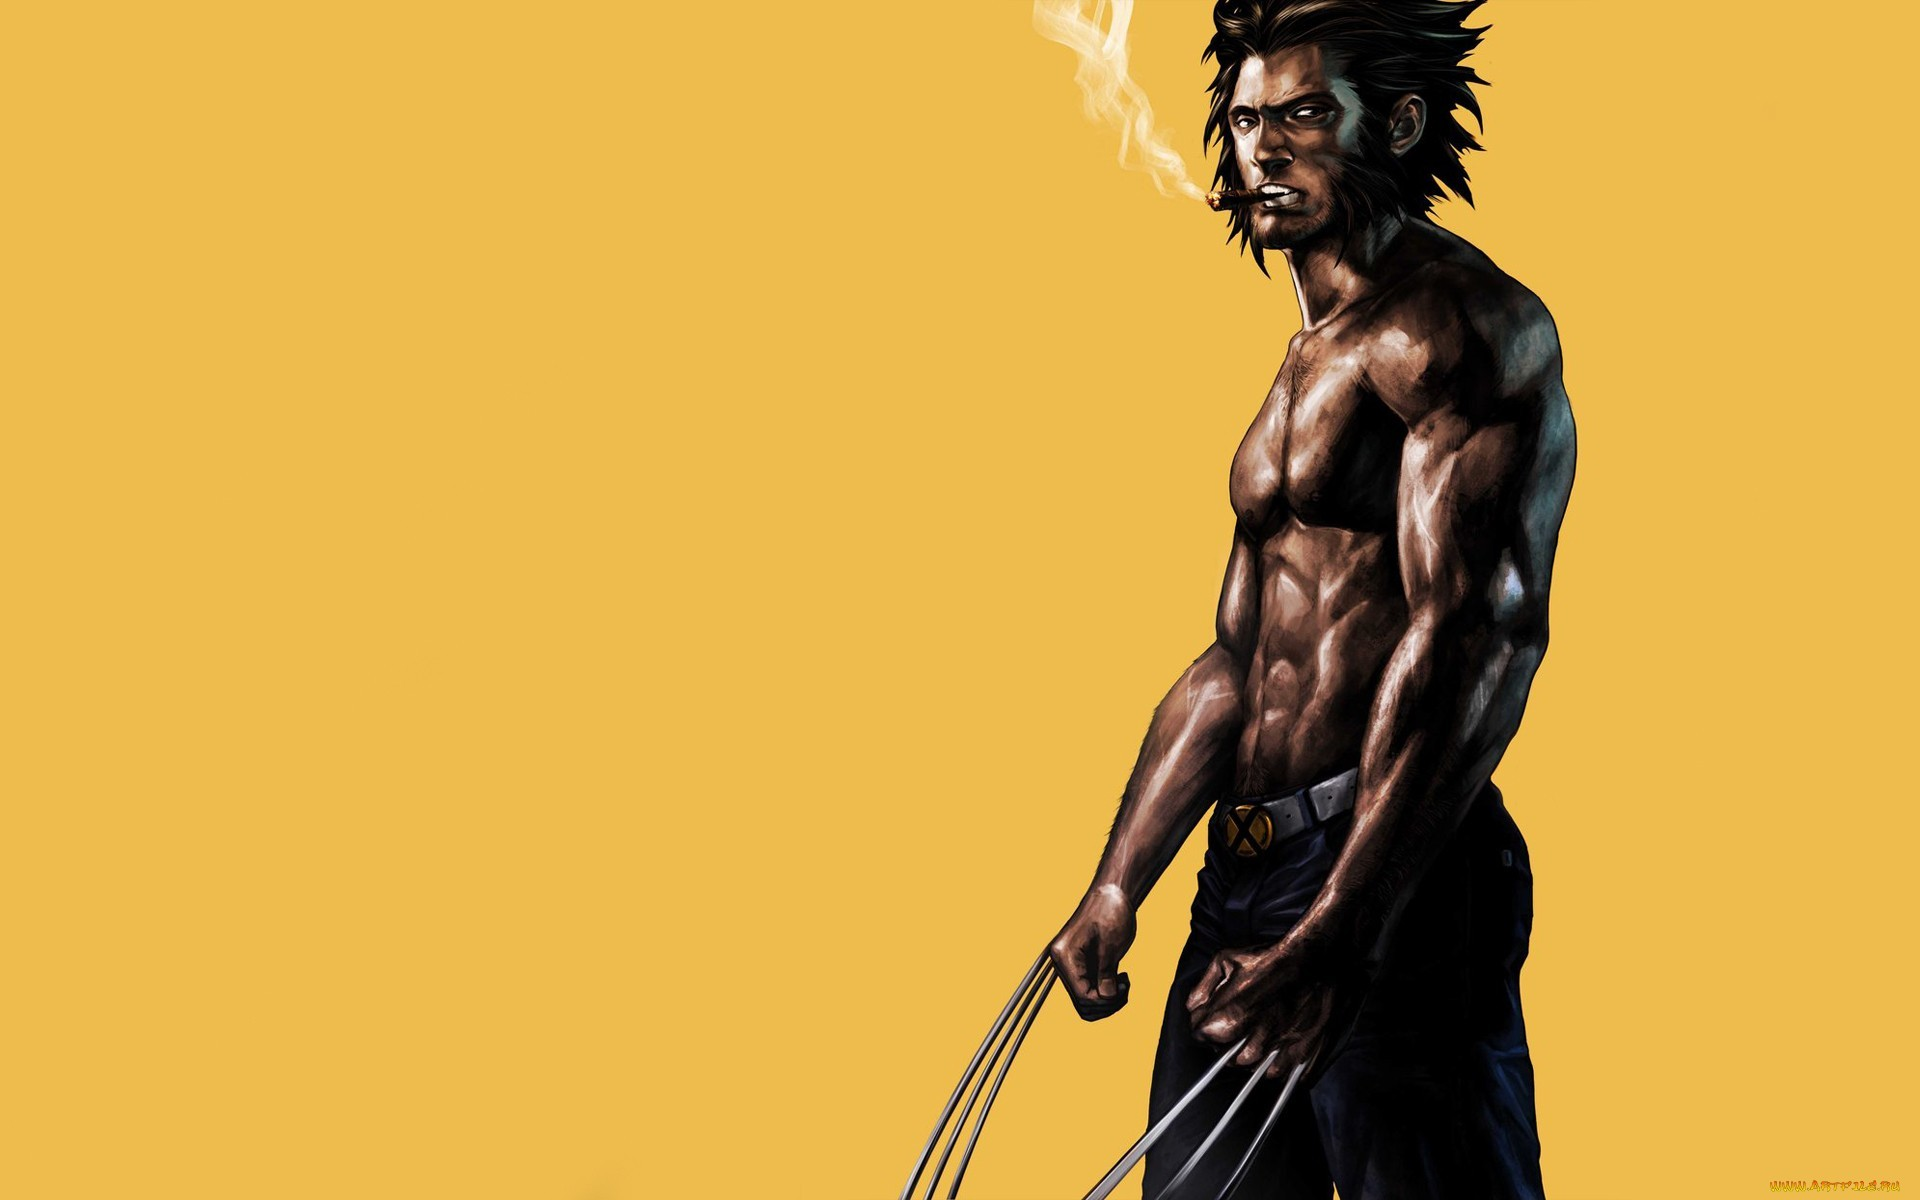 Wolverine Marvel Drawing Smoking Cigar wallpaper 1920x1200 74666 1920x1200